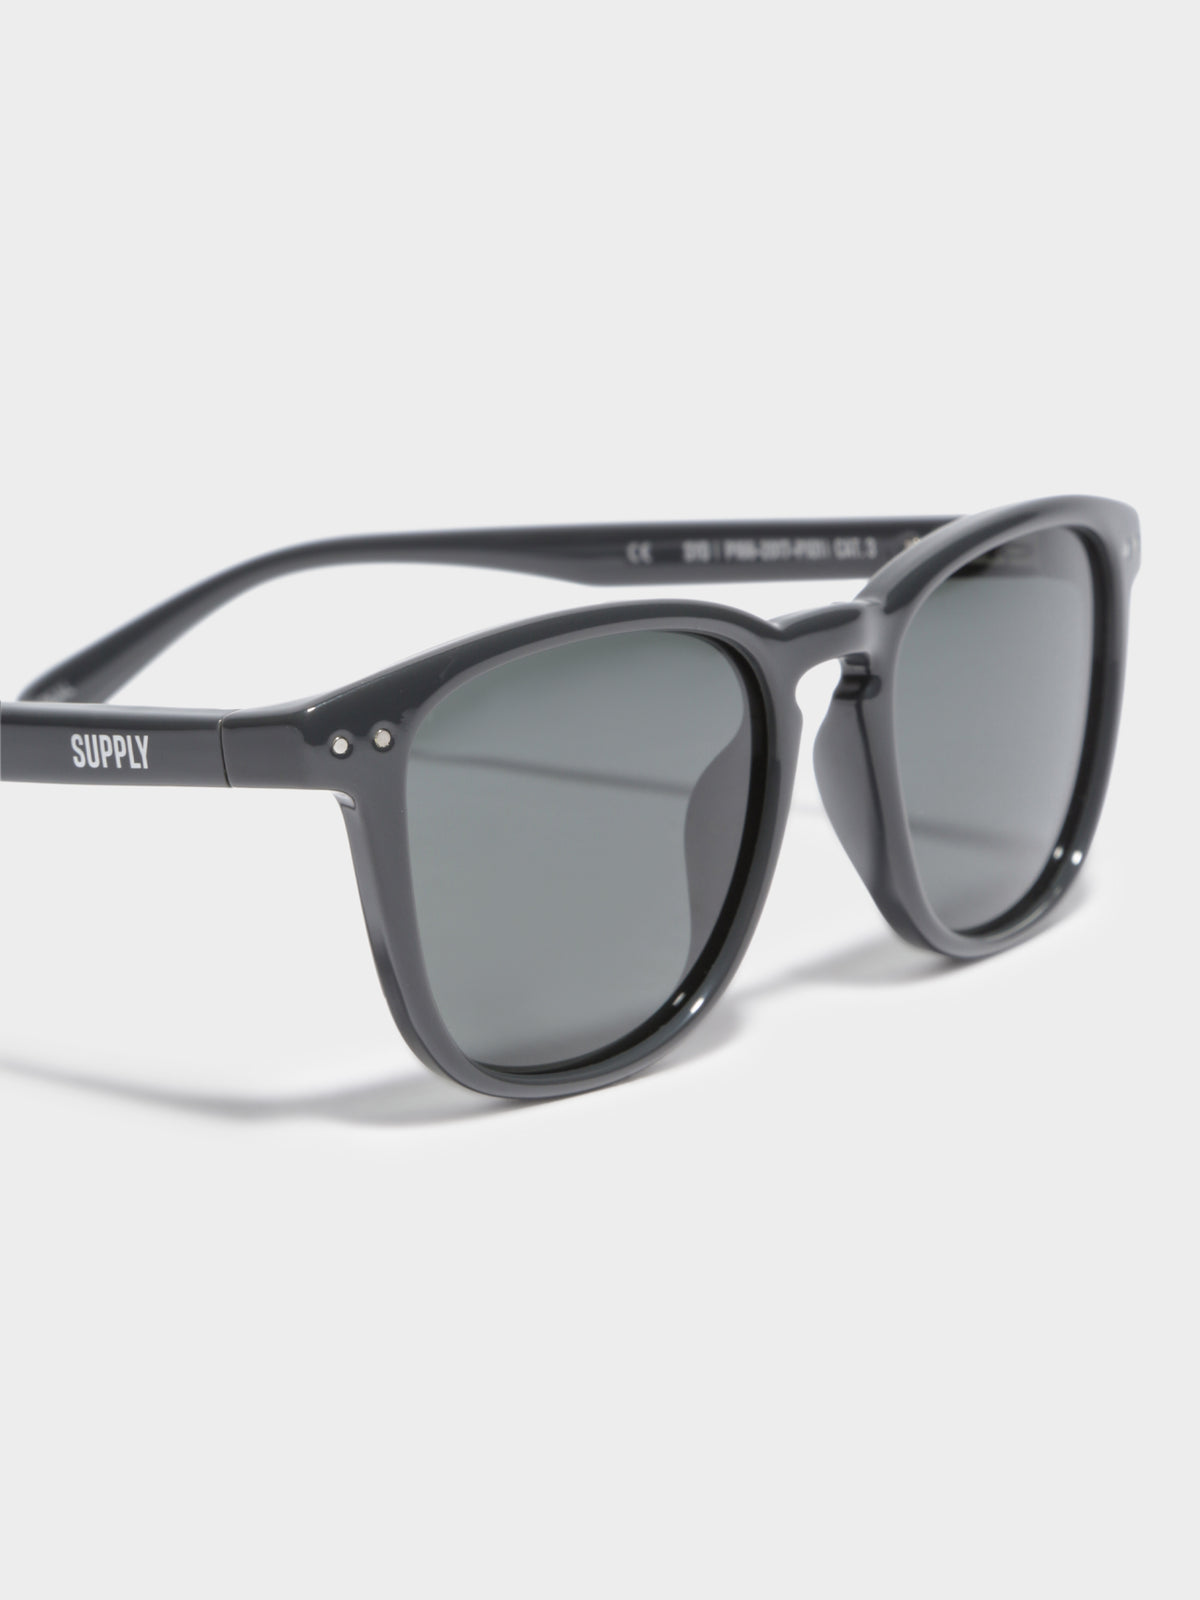 SYD Polarised Sunglasses in Polished Charcoal & Dark Grey